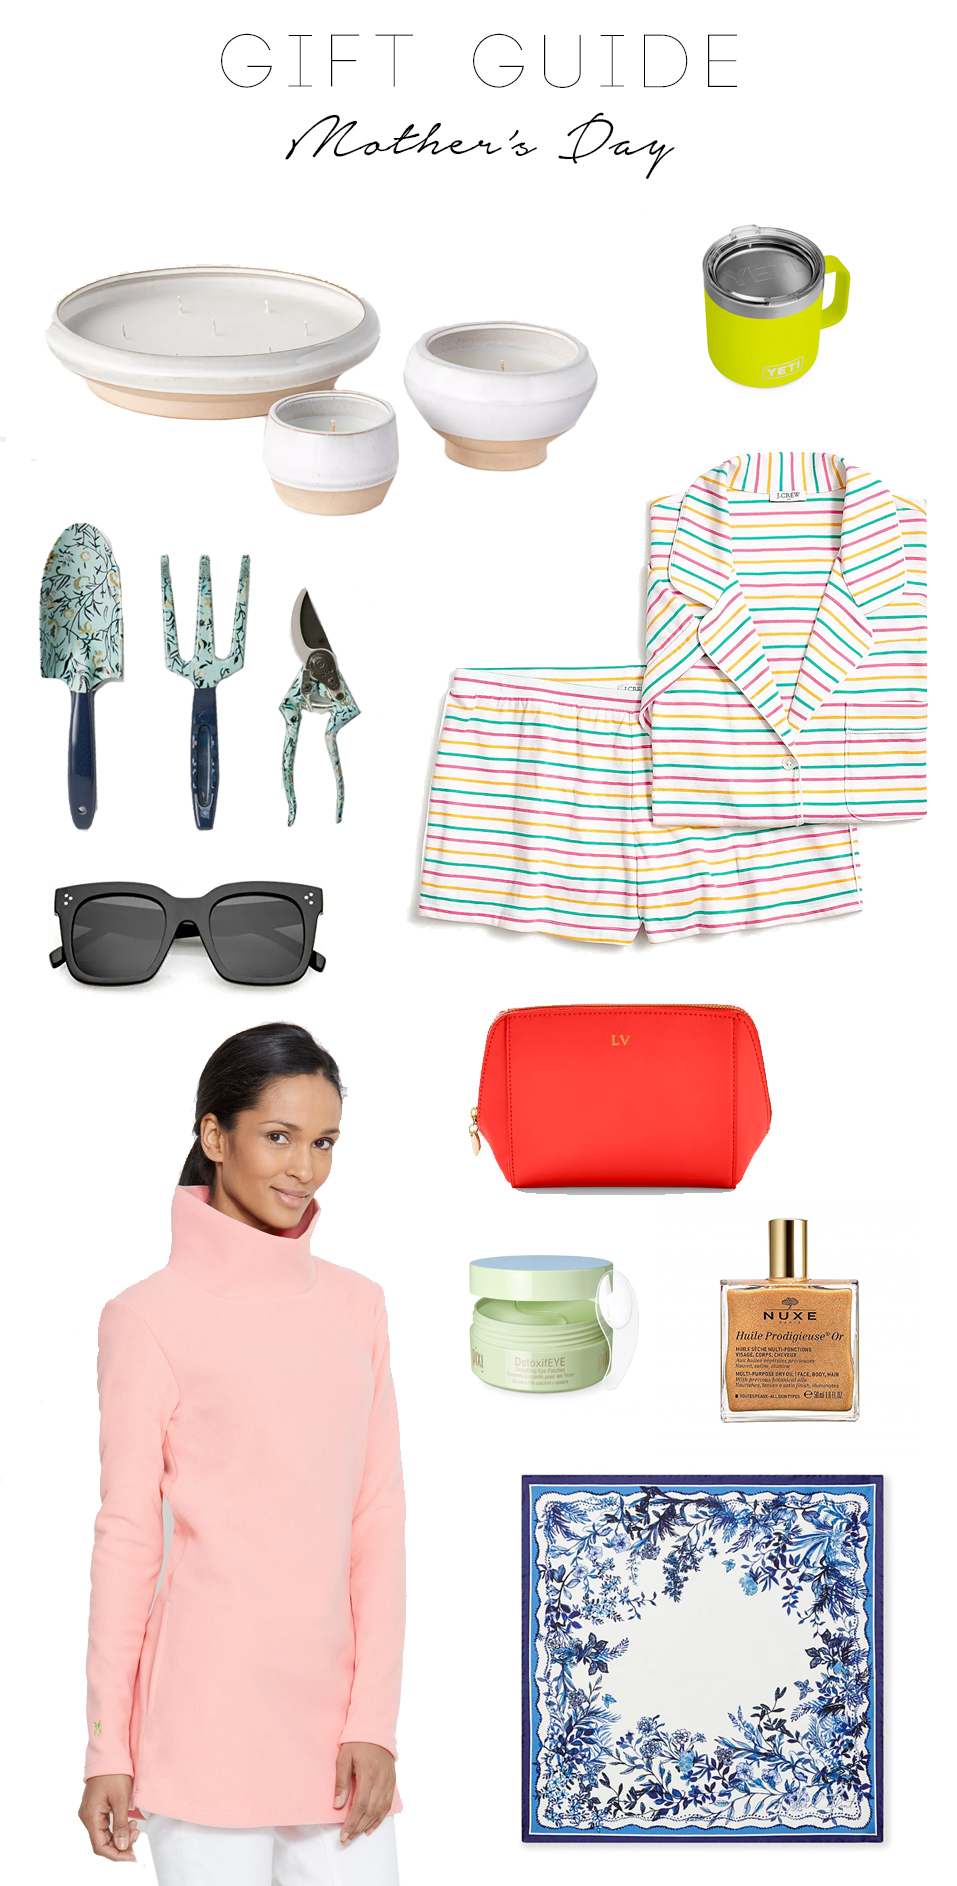 GiftGuide_MothersDay2020